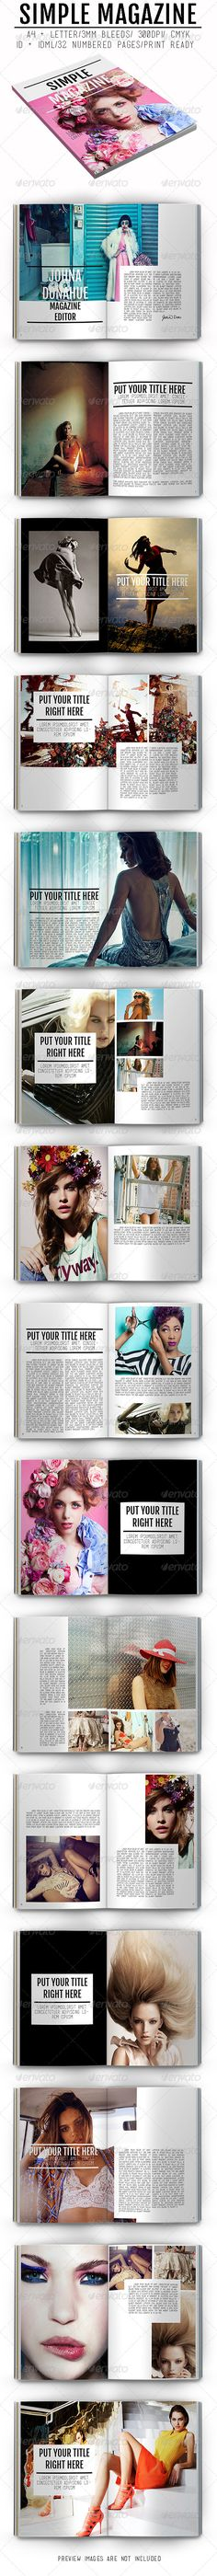 Simple Magazine #magazine #template #simple #layout #indesign #idml #graphicriver